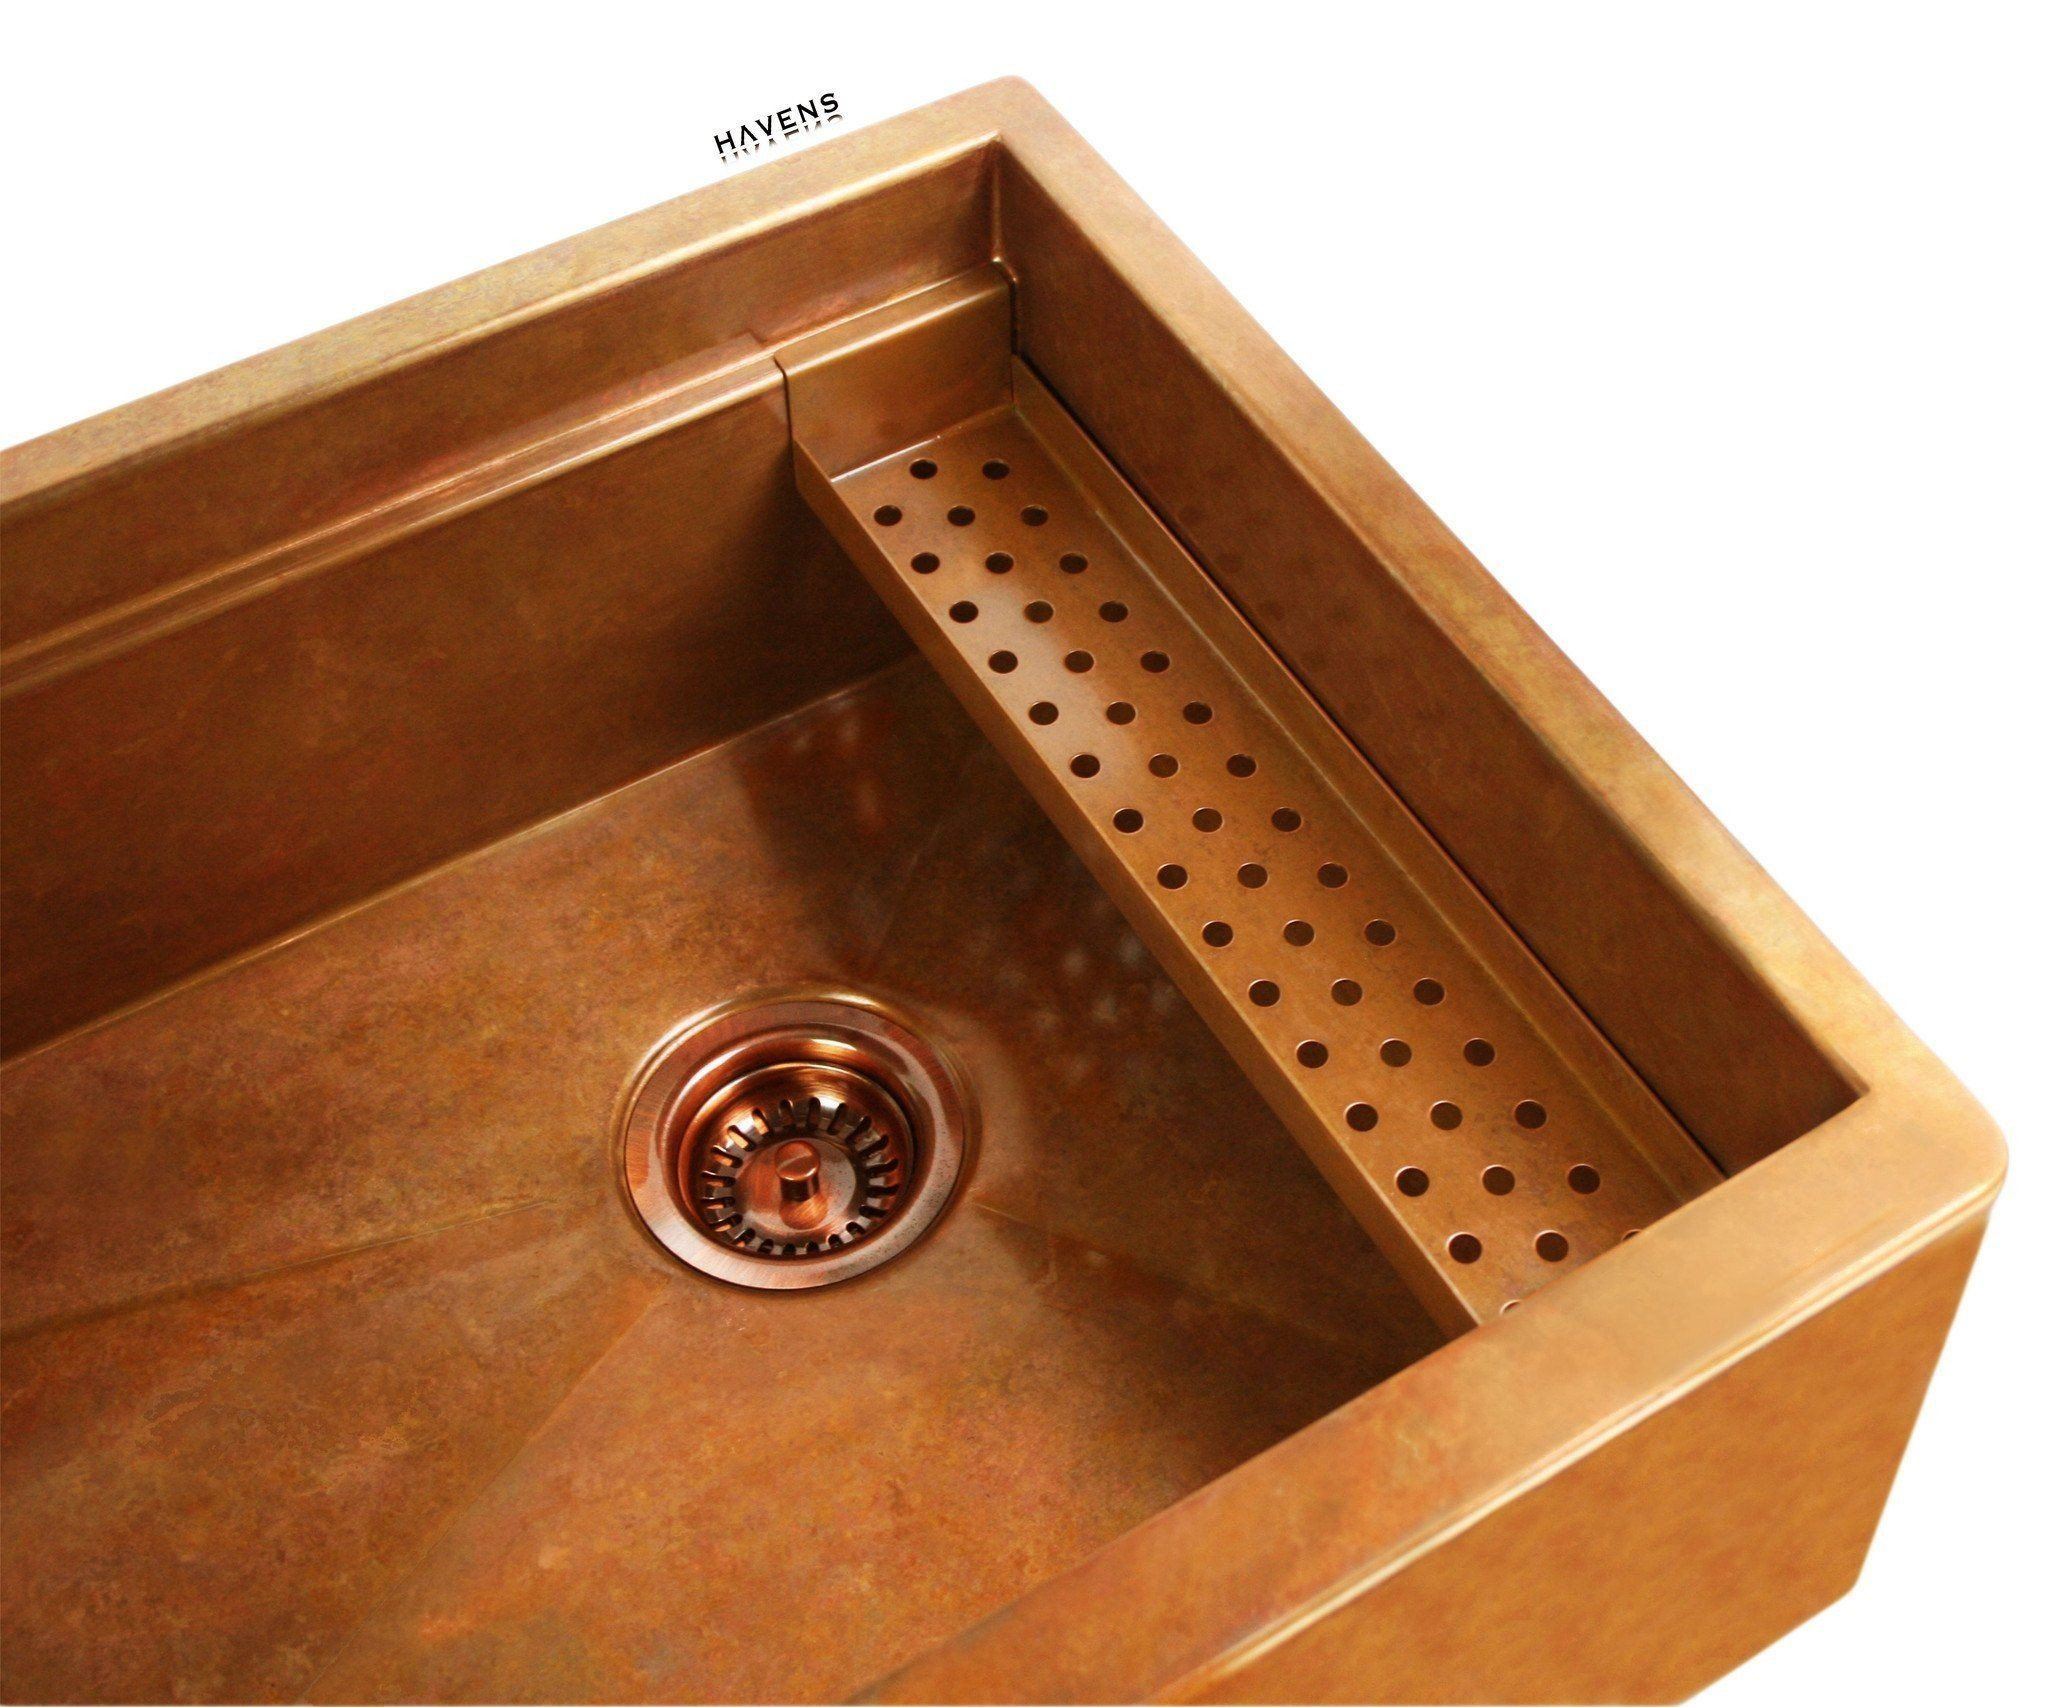 Built in copper sink ledge for advanced accessories.